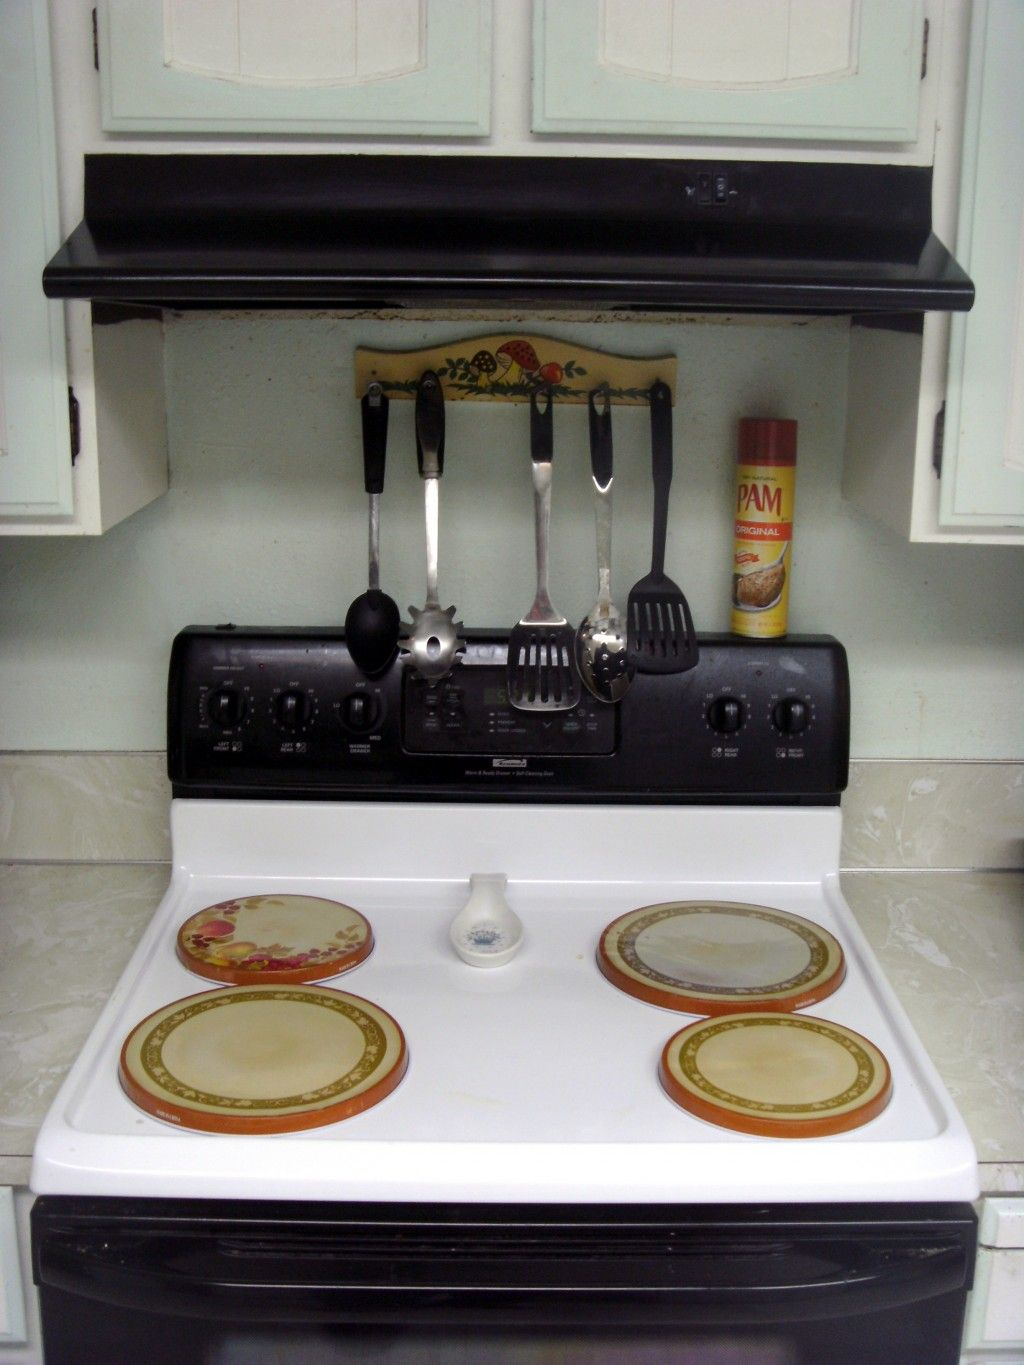 How to install an overtherange microwave over range